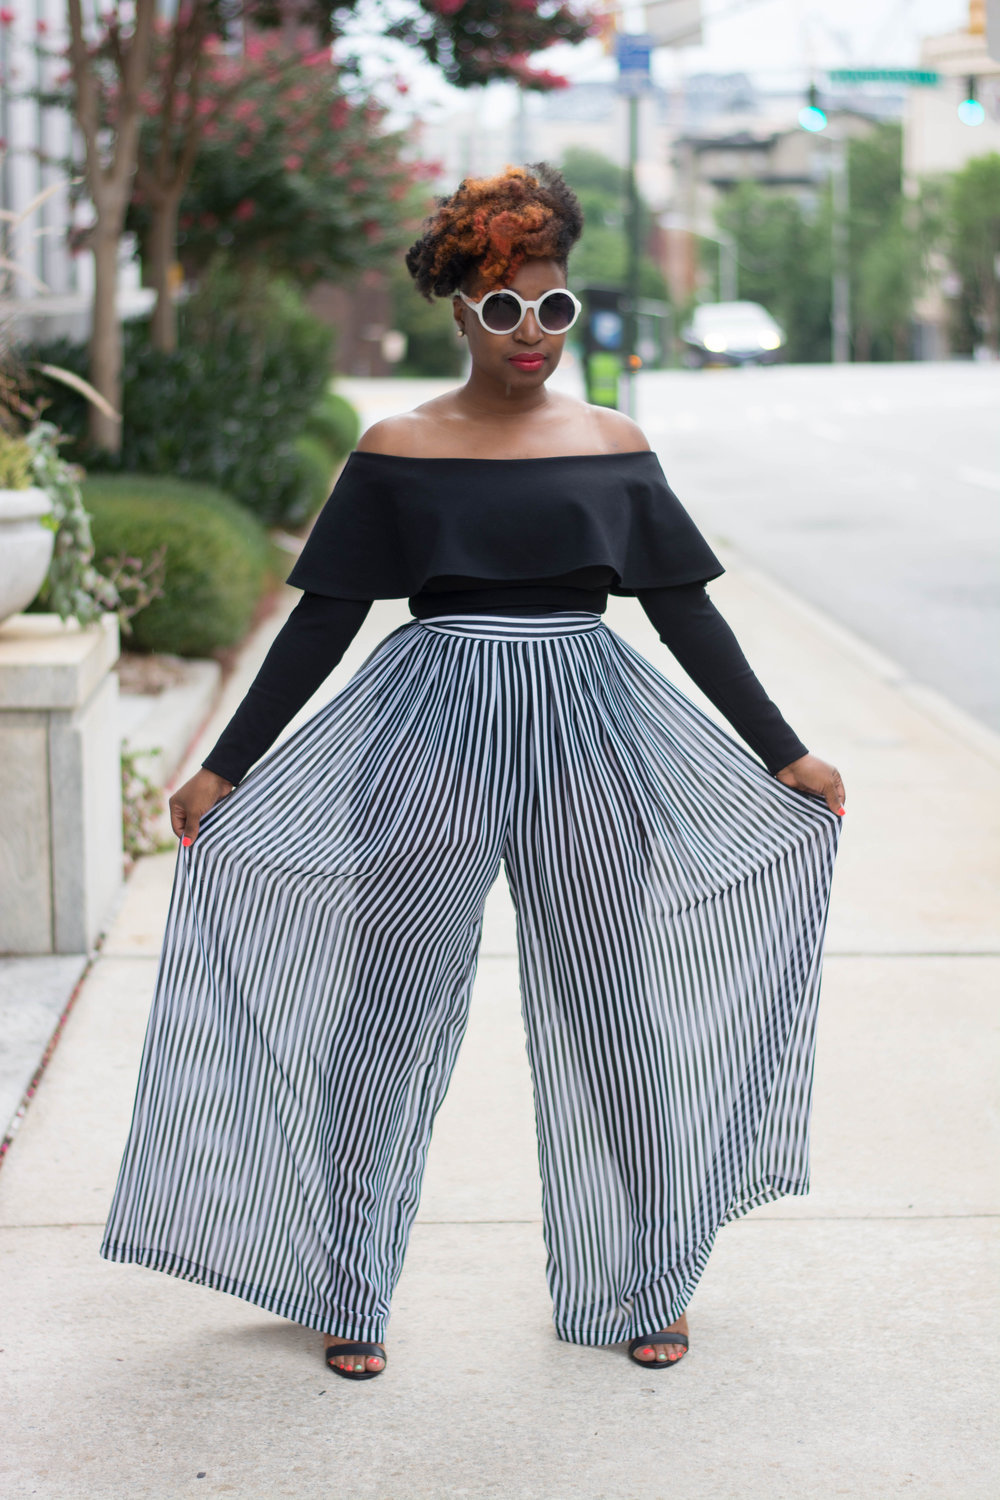 Melodie Stewart,The Style Klazit, Over the shoulder top and Palazzo pants, Atlanta Style blogger, Atlanta Stylist